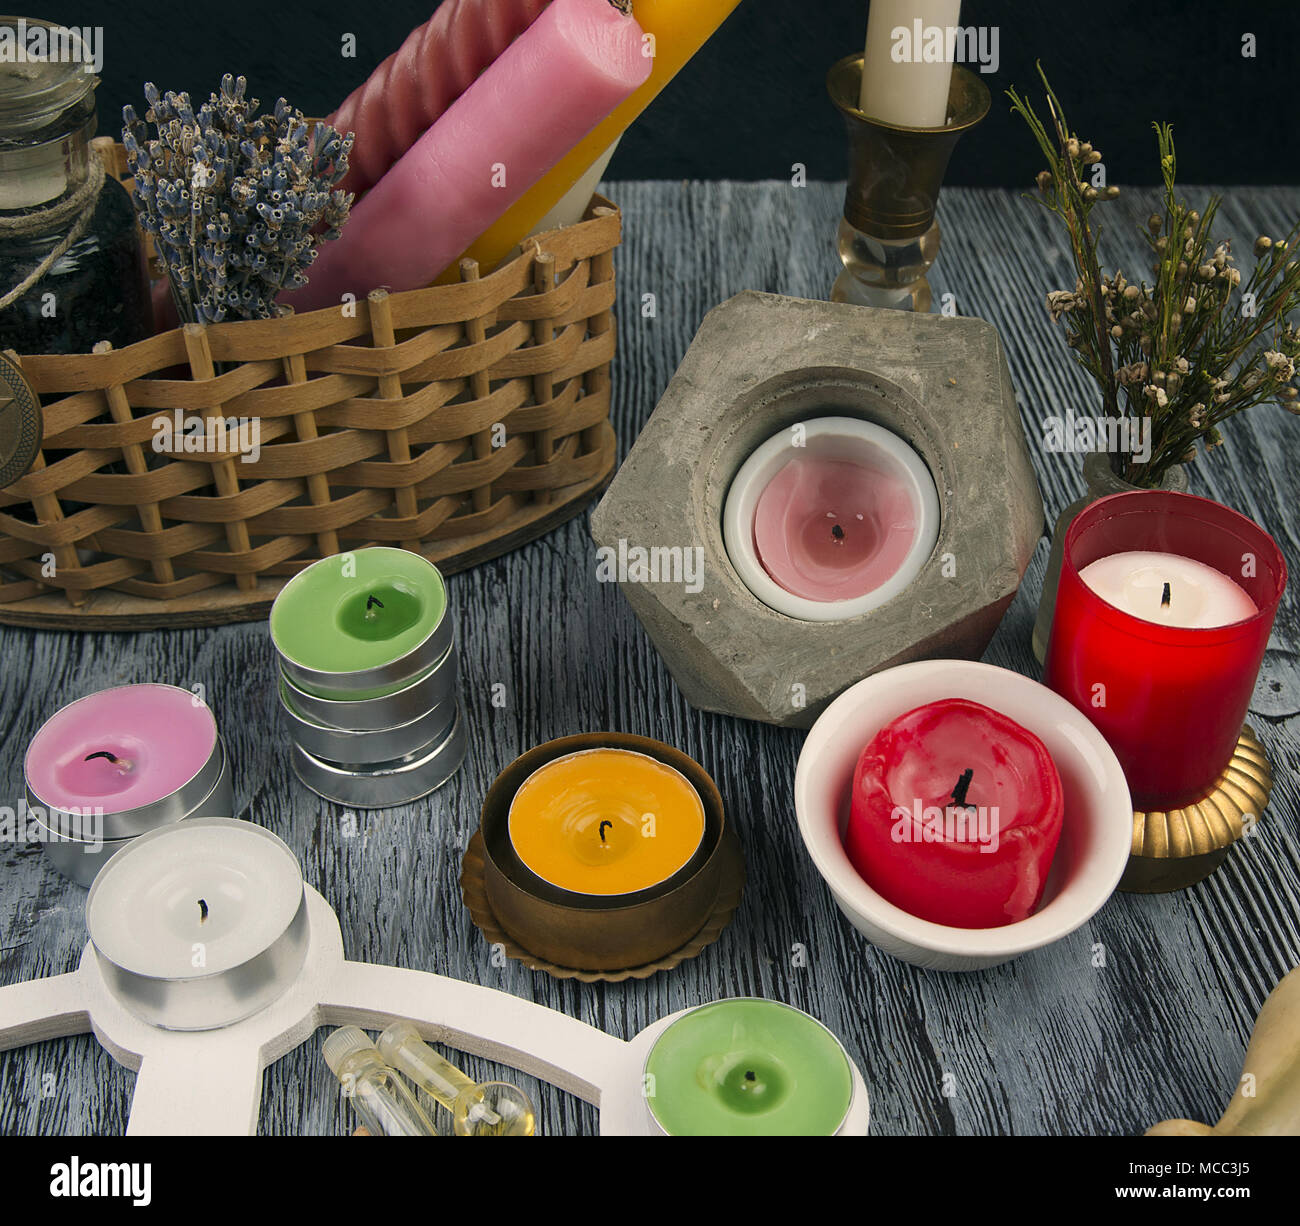 Altar with Wheel of year, pentagram and colorful candles - Stock Image